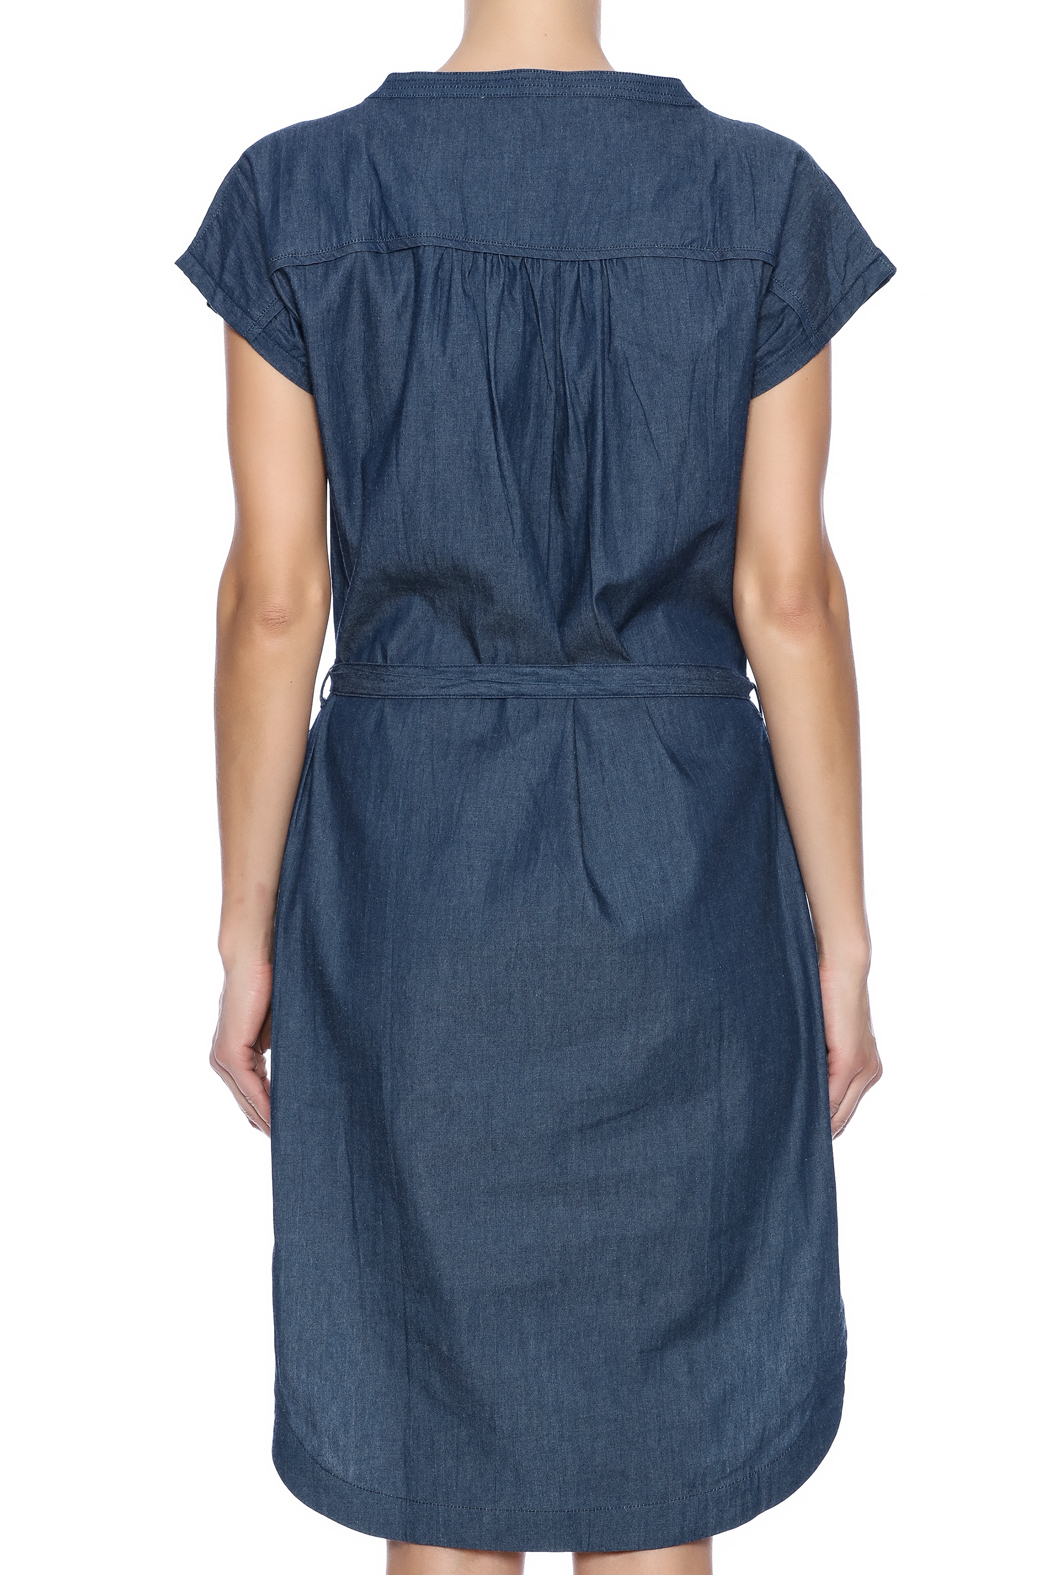 Pink Martini Casual Button Down Dress - Back Cropped Image